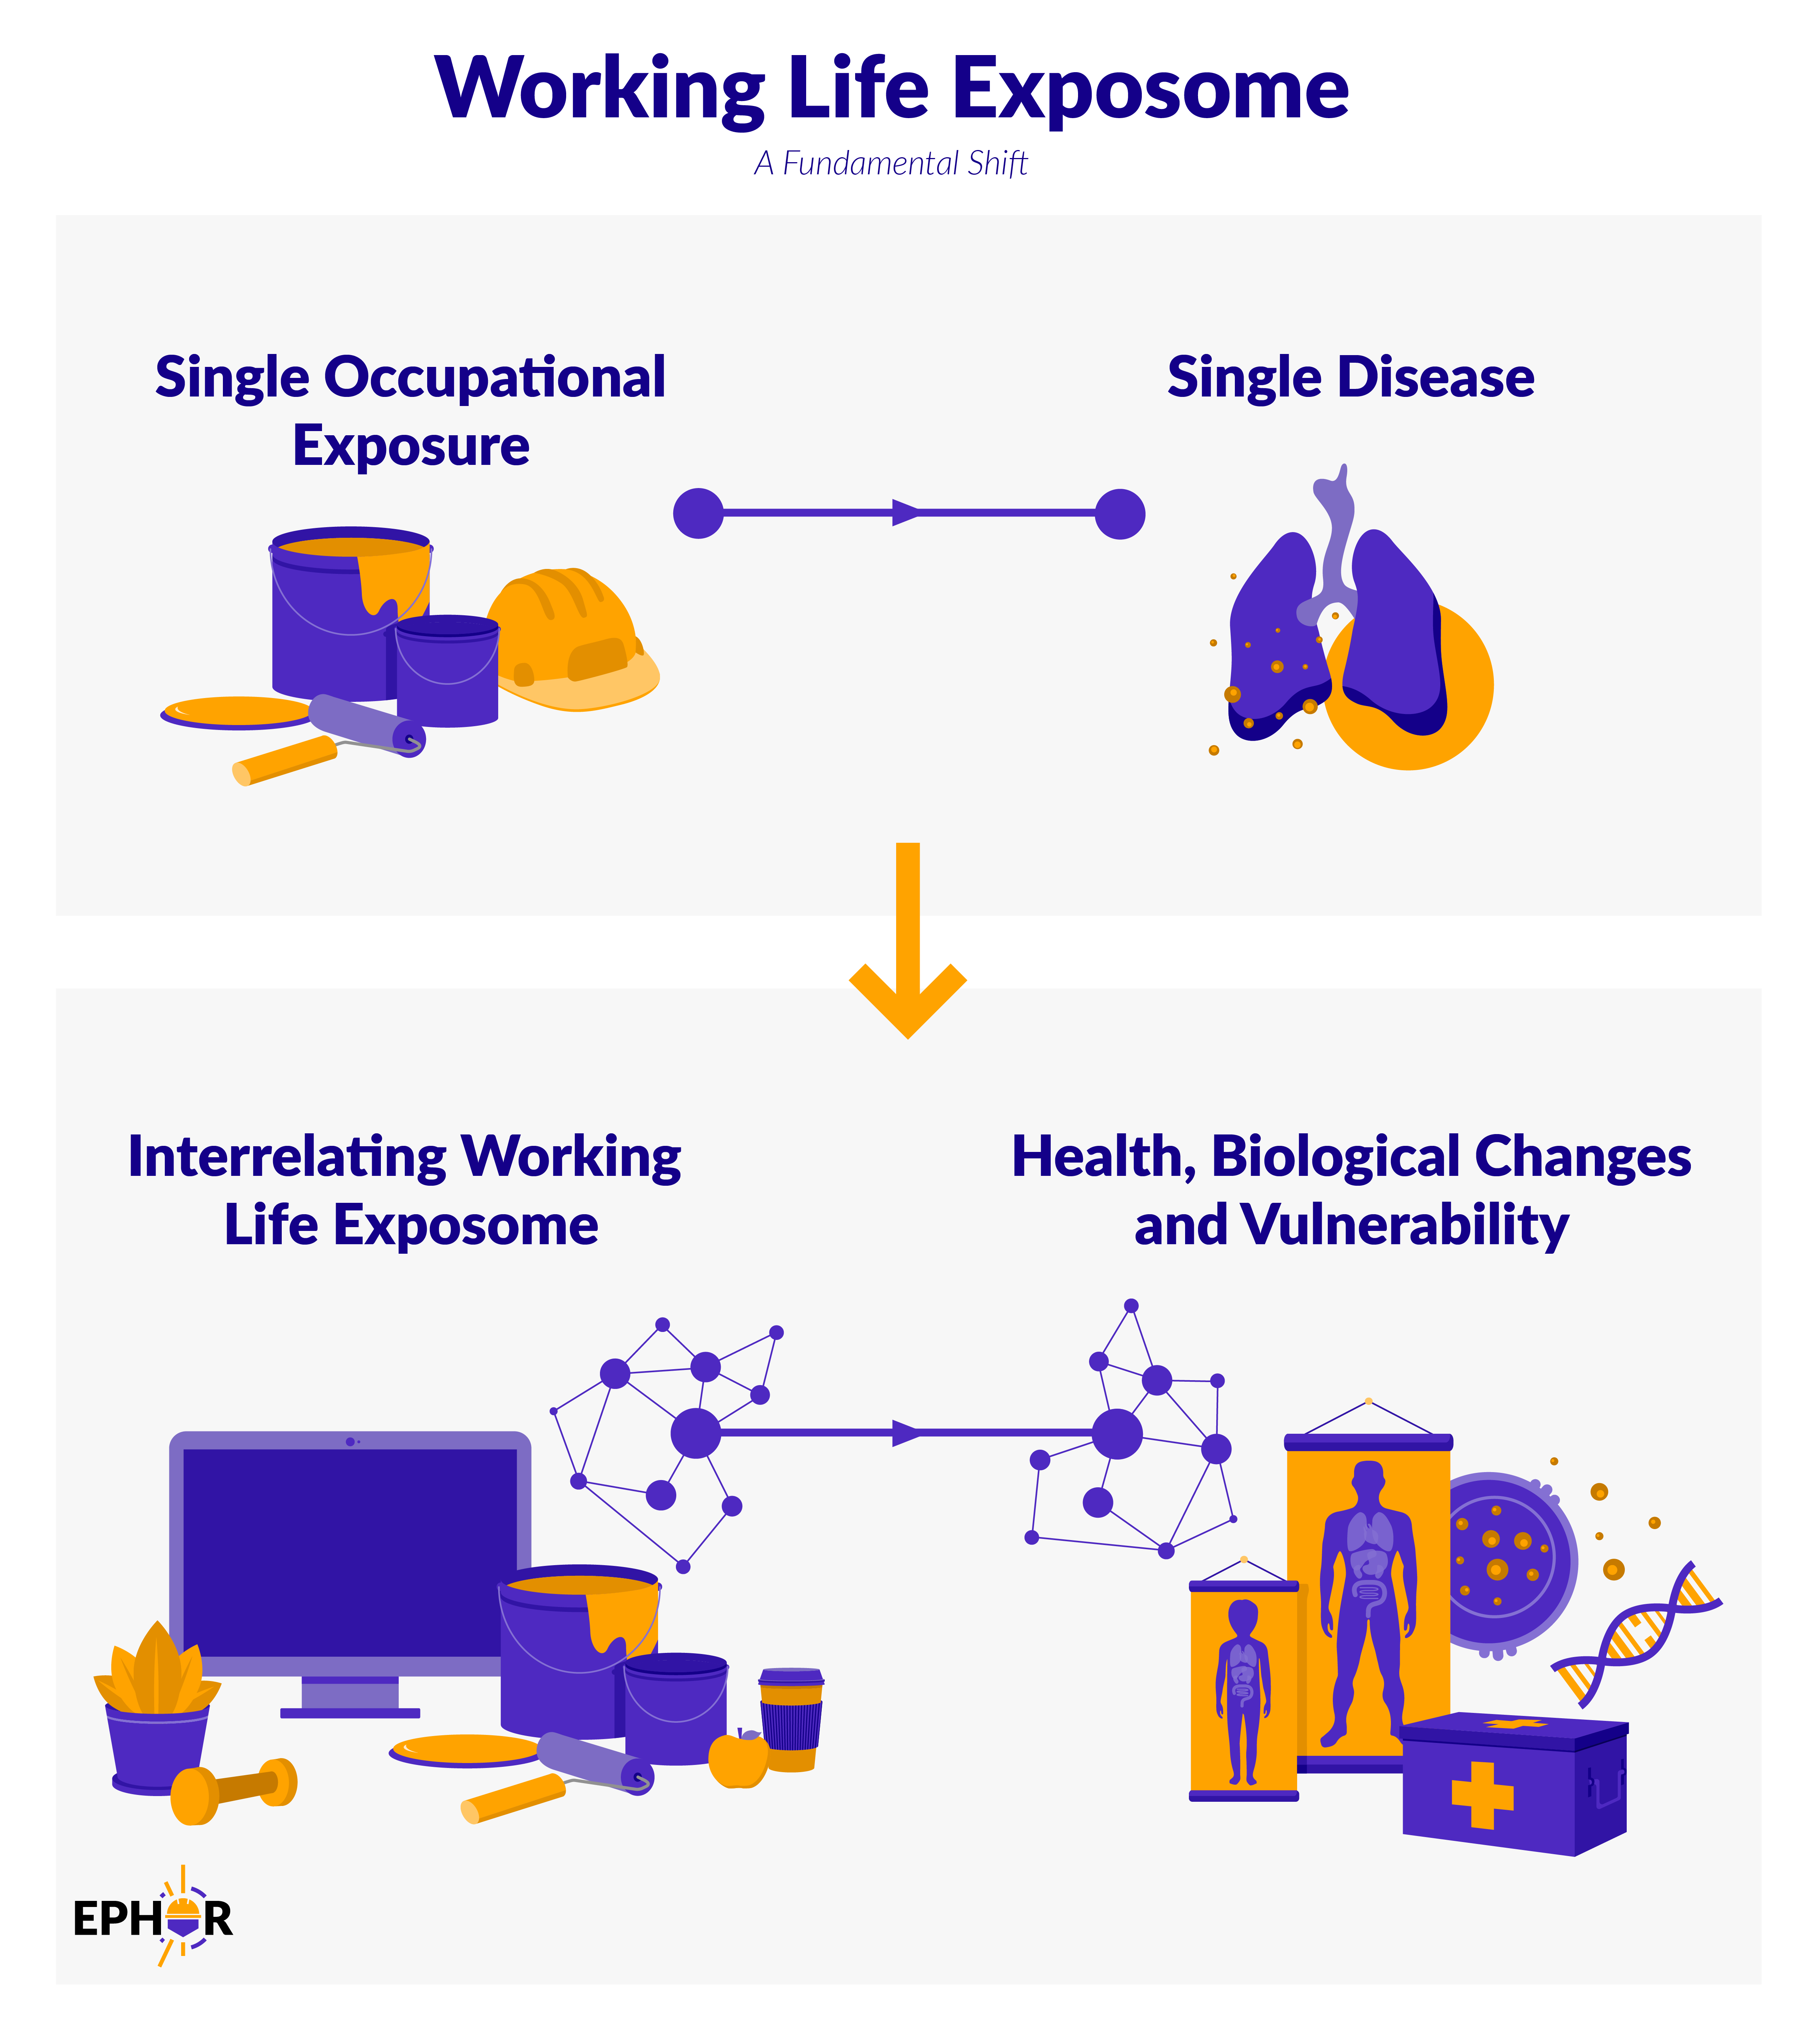 Working Life Exposome - A Fundamental Shift